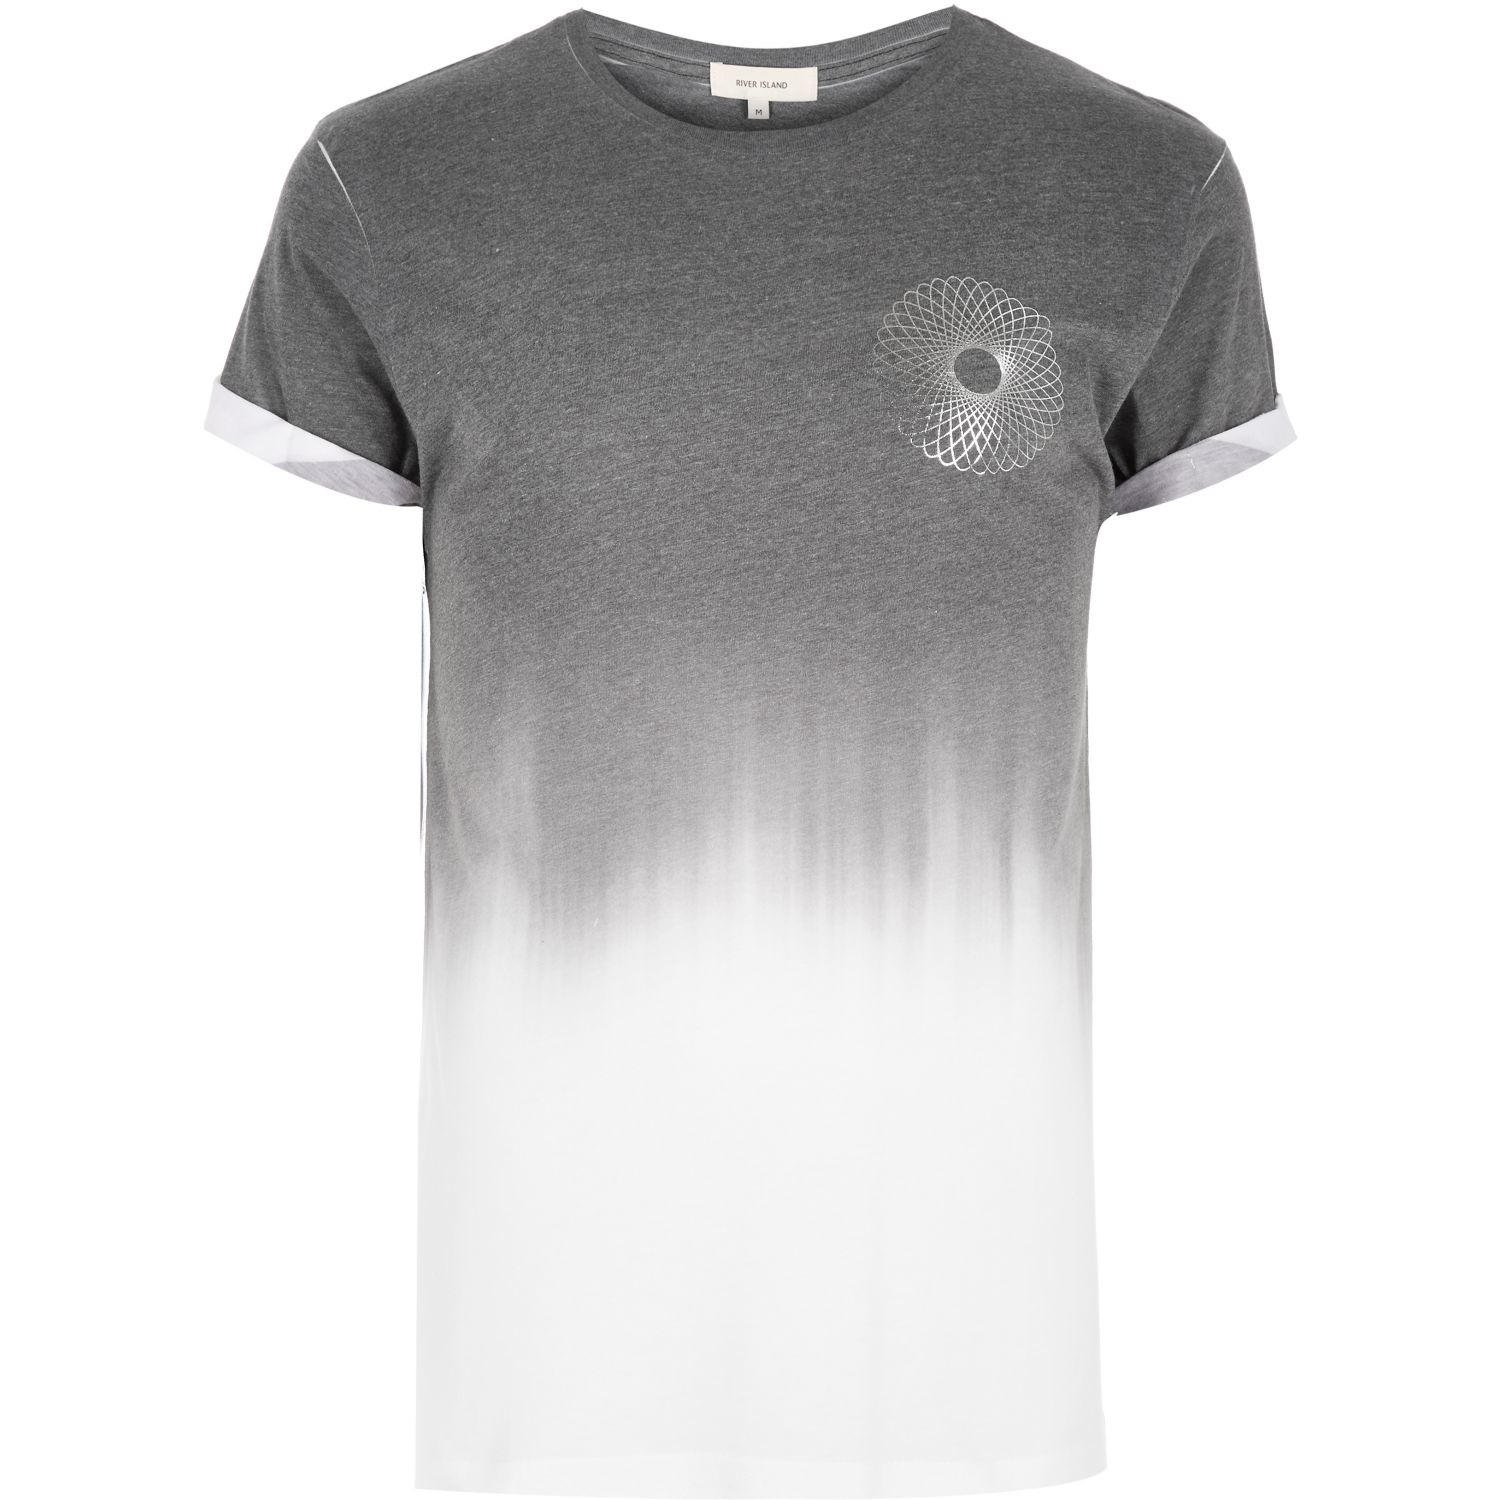 River island dark grey faded spiral print t shirt in gray for Faded color t shirts